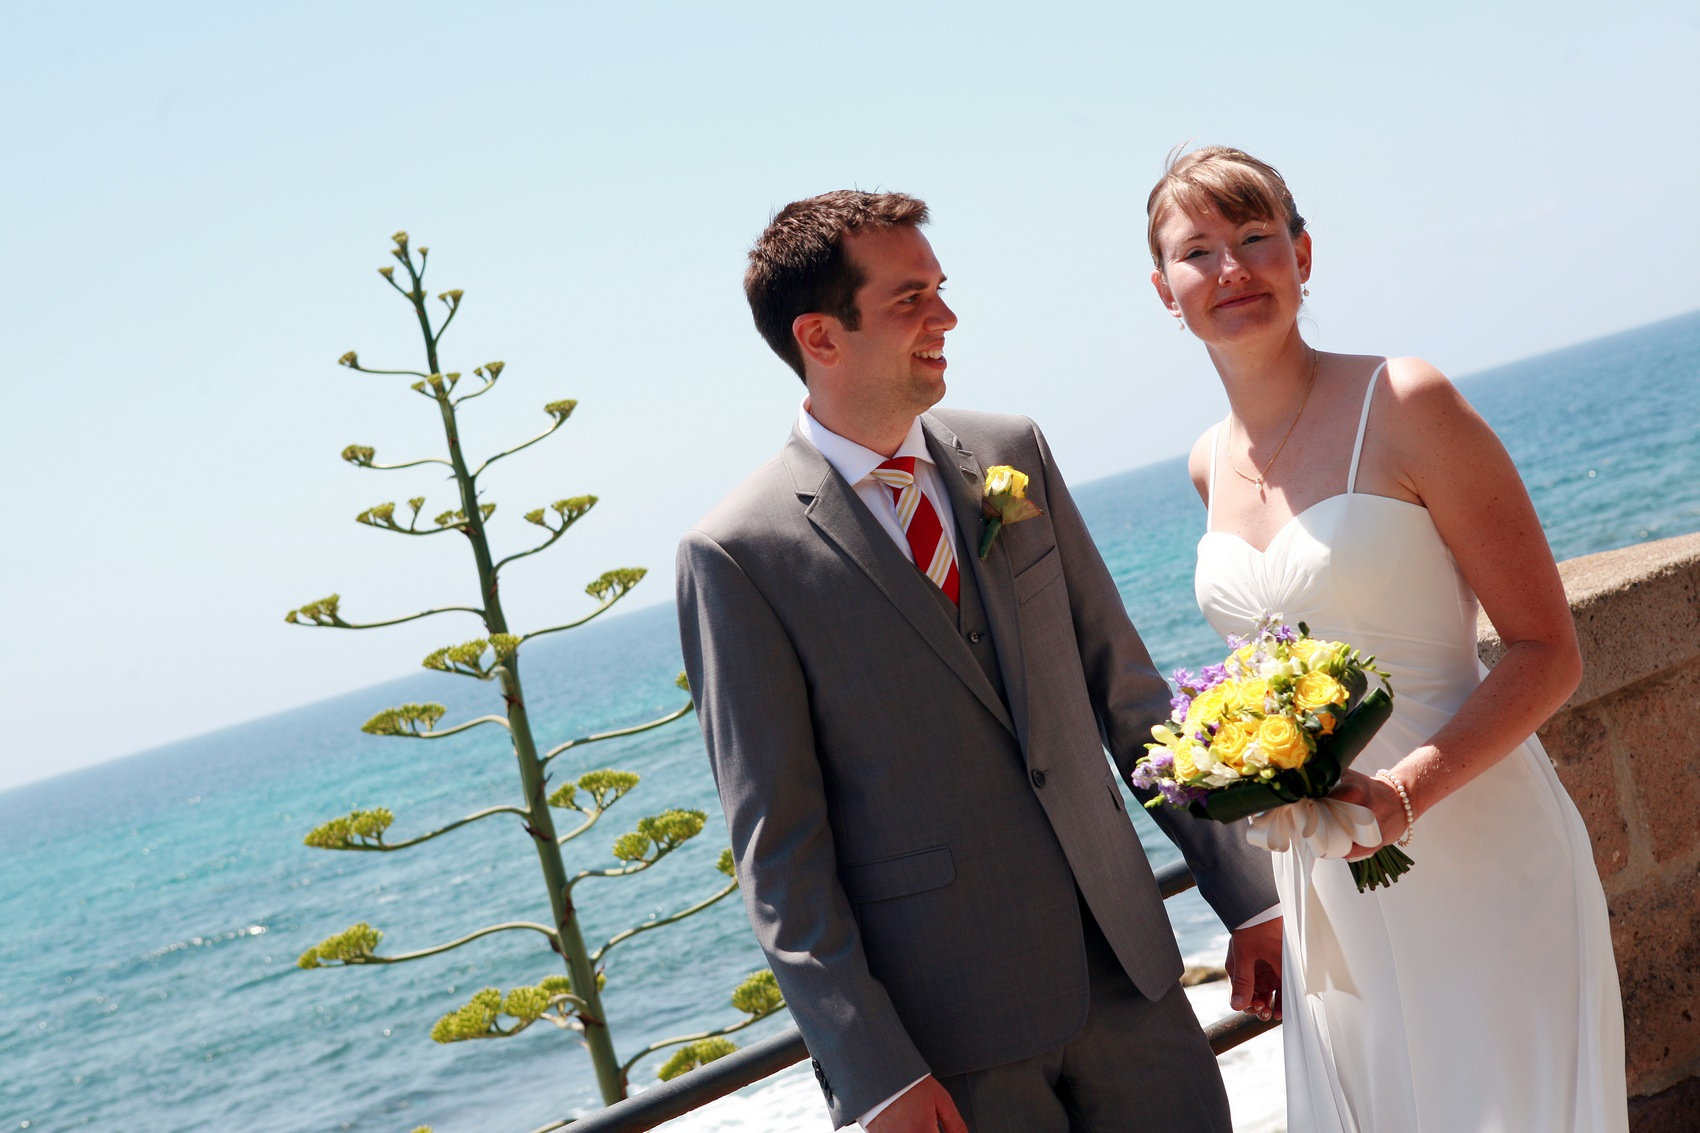 weddings in alghero